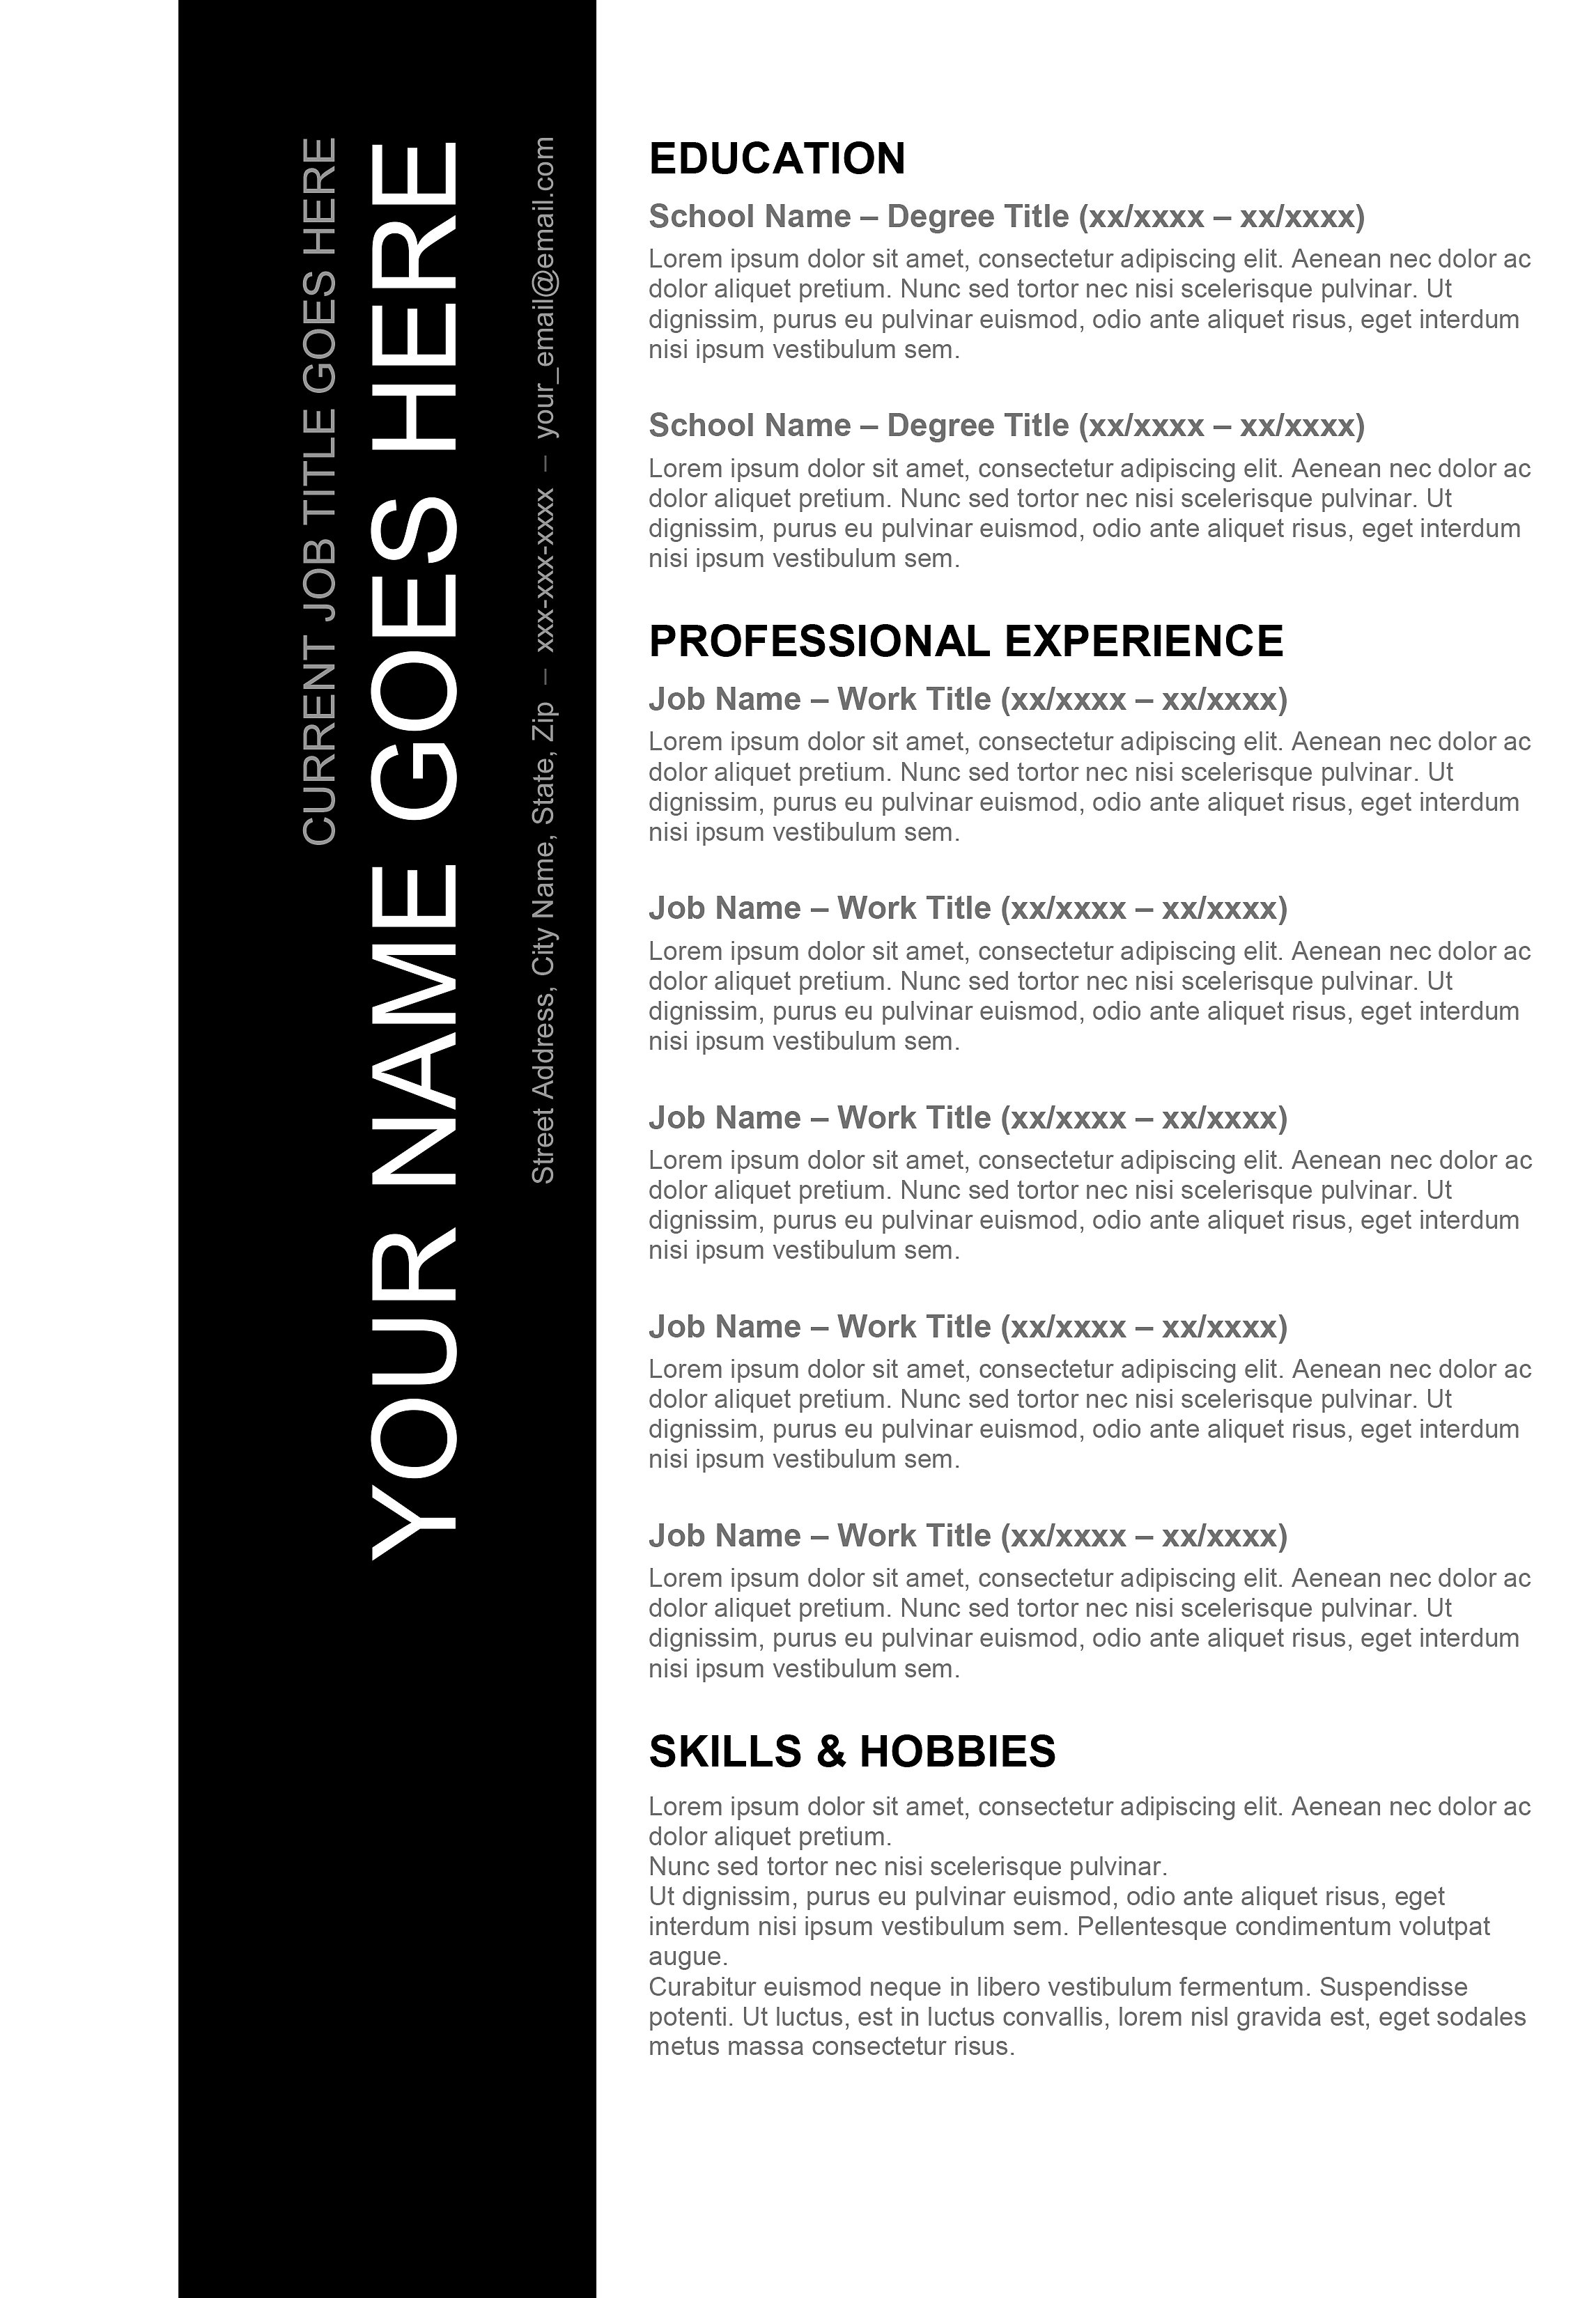 Boardroom Resumes Resume Writing Service 11236 Wins Creative Resumes I Downloadable Templates And Custom Designs